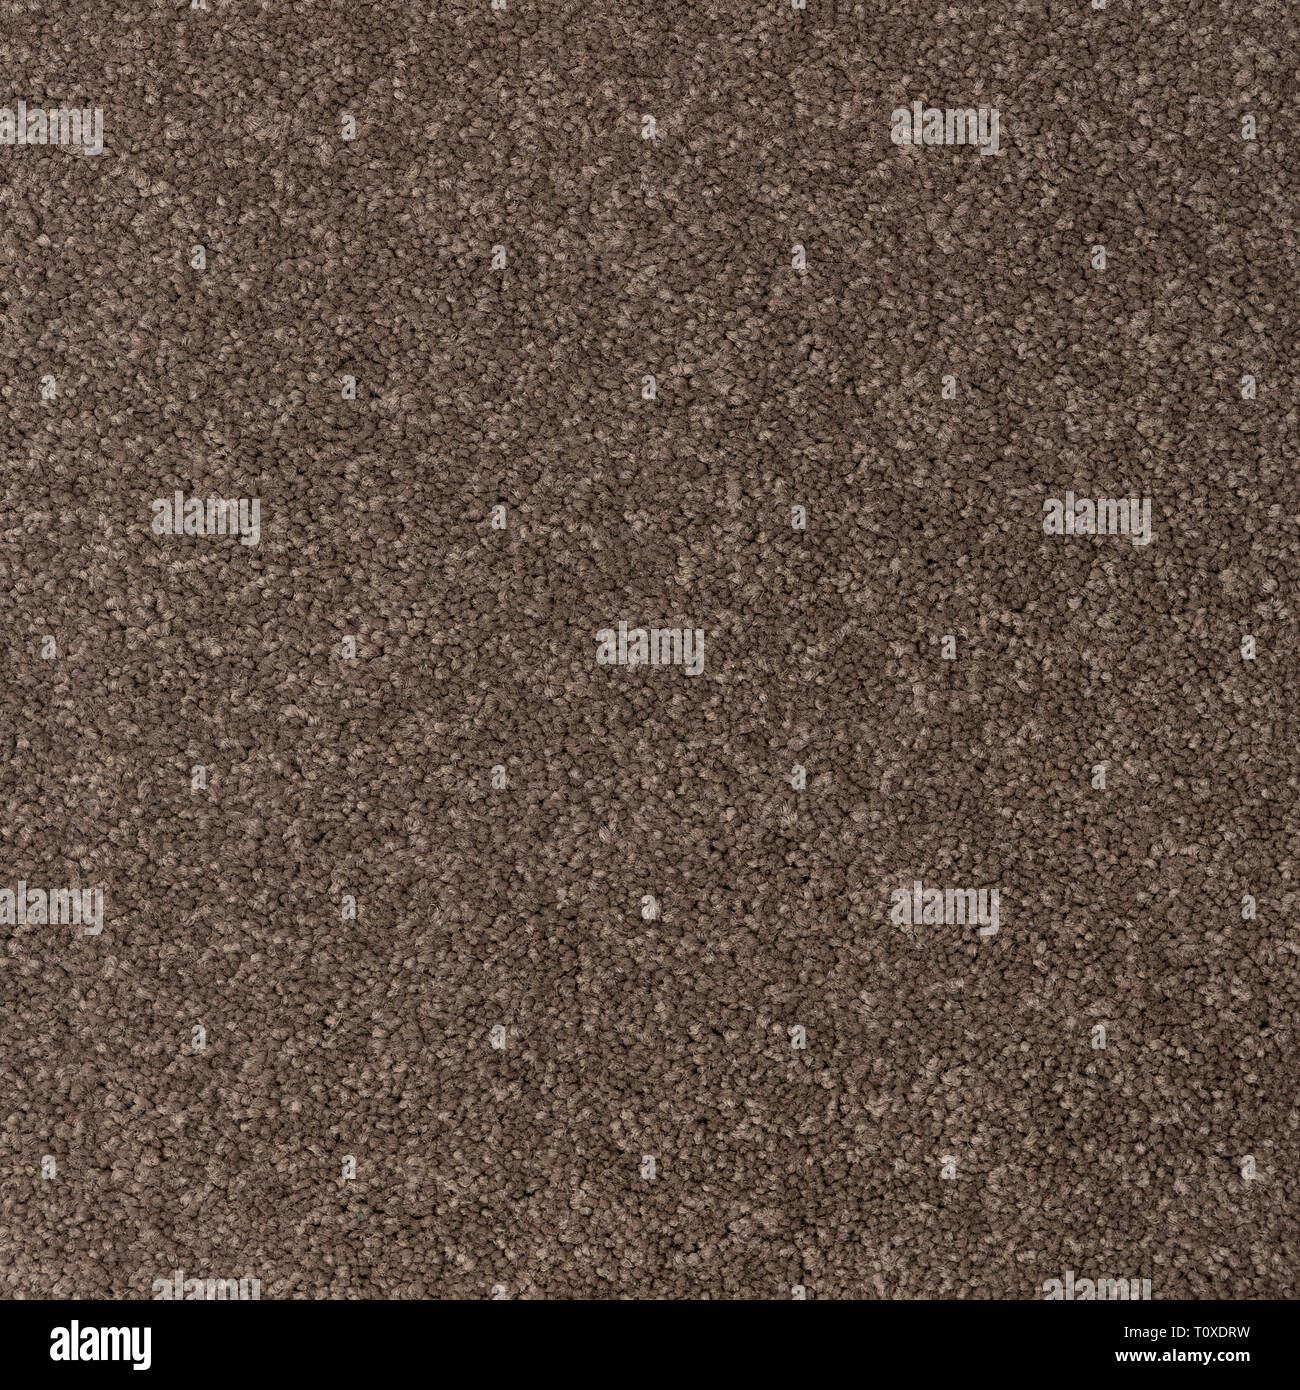 Texture of coloured carpet with short pile - Stock Image